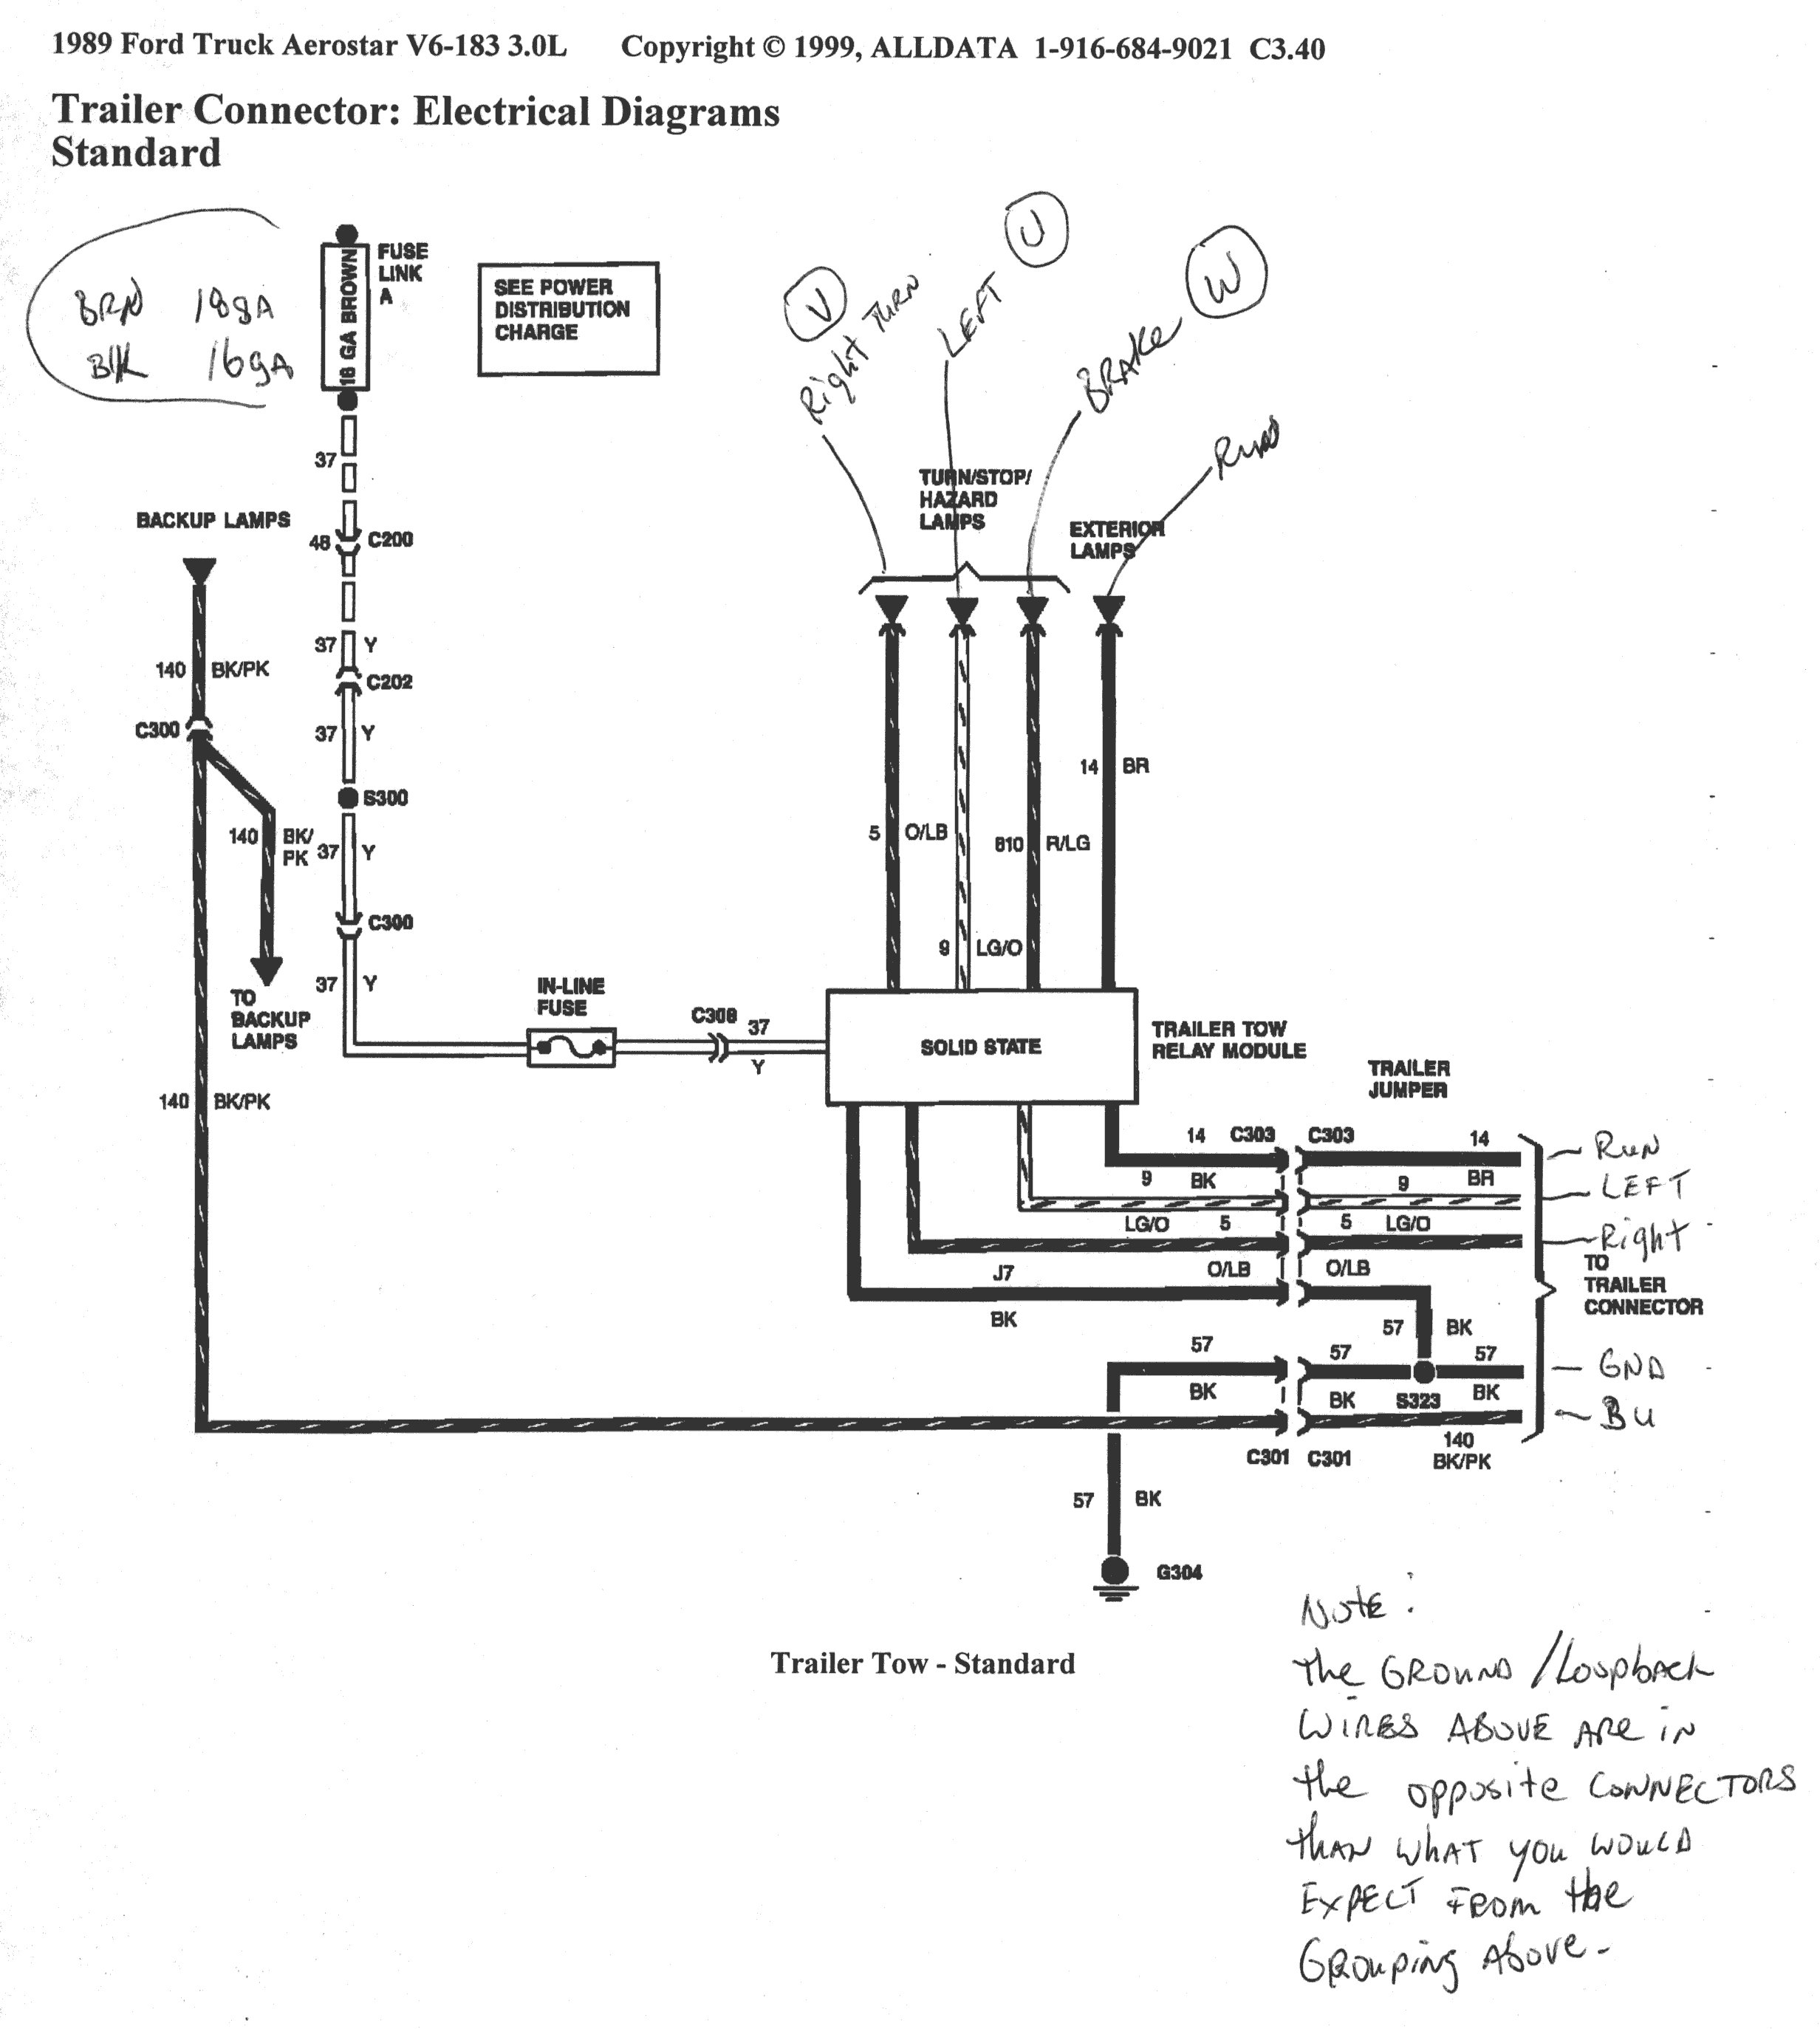 1977 Camaro Engine Wiring Diagram Rear Body Taillight Wiring Diagrams Chatter Chatter Chatteriedelavalleedufelin Fr